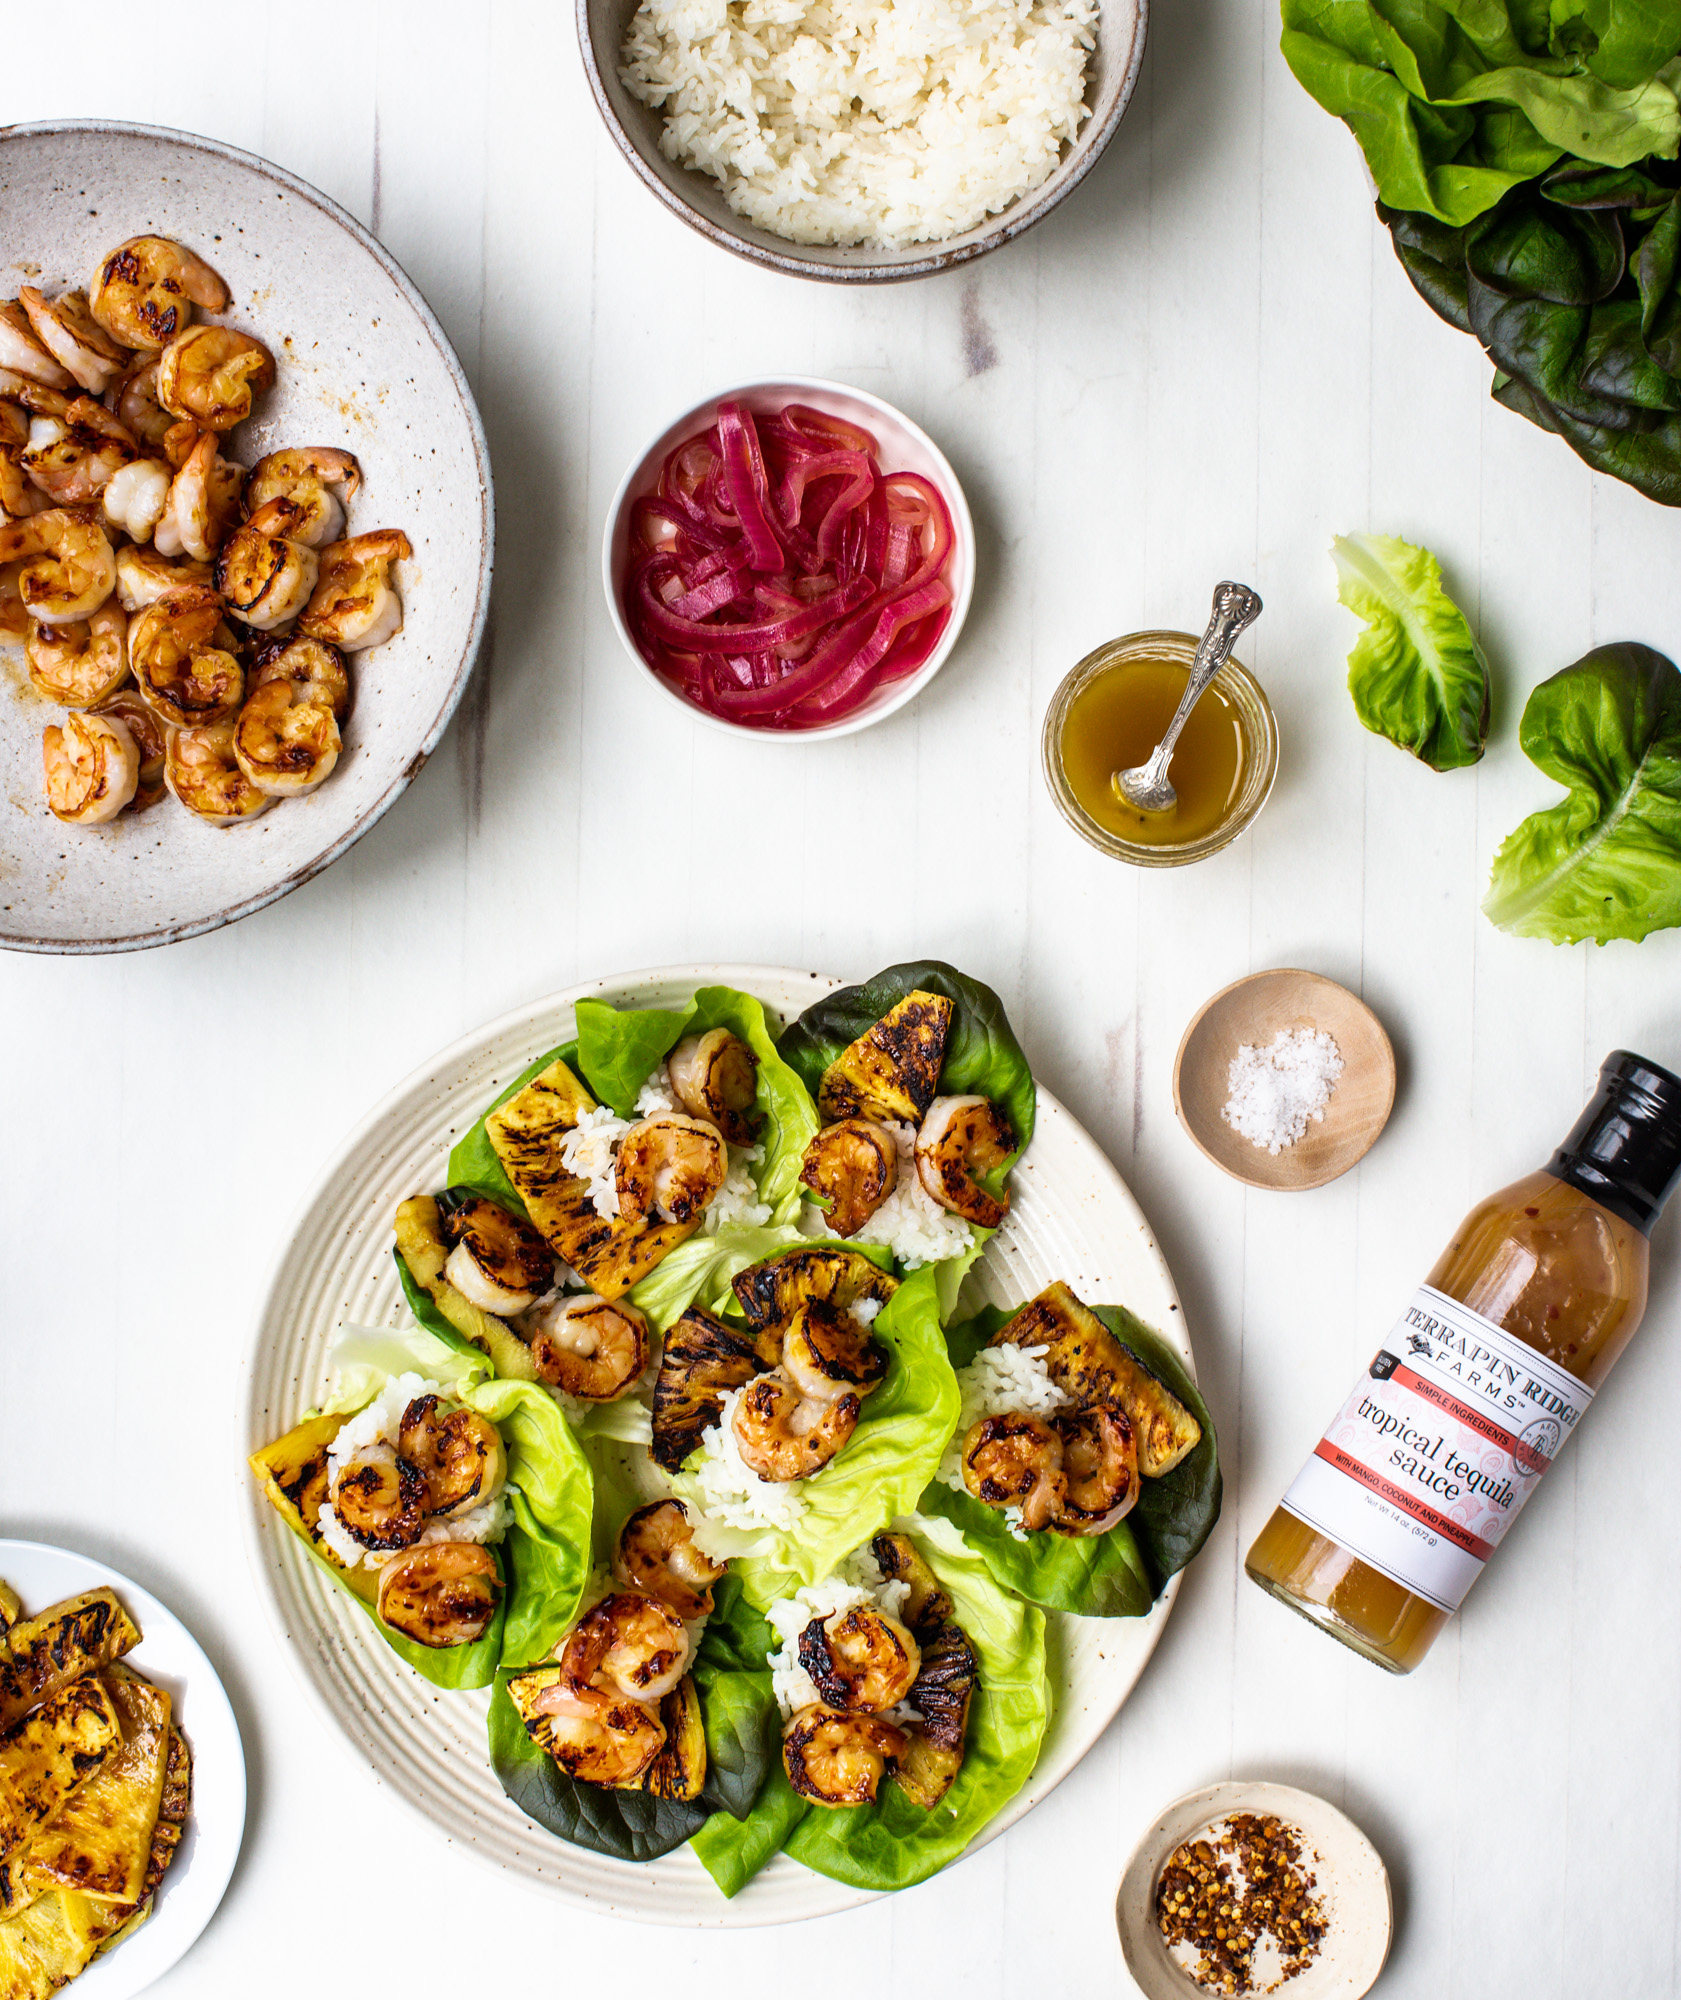 Tropical Lettuce Wraps with Shrimp, Pineapple, and Pickled Red Onions.